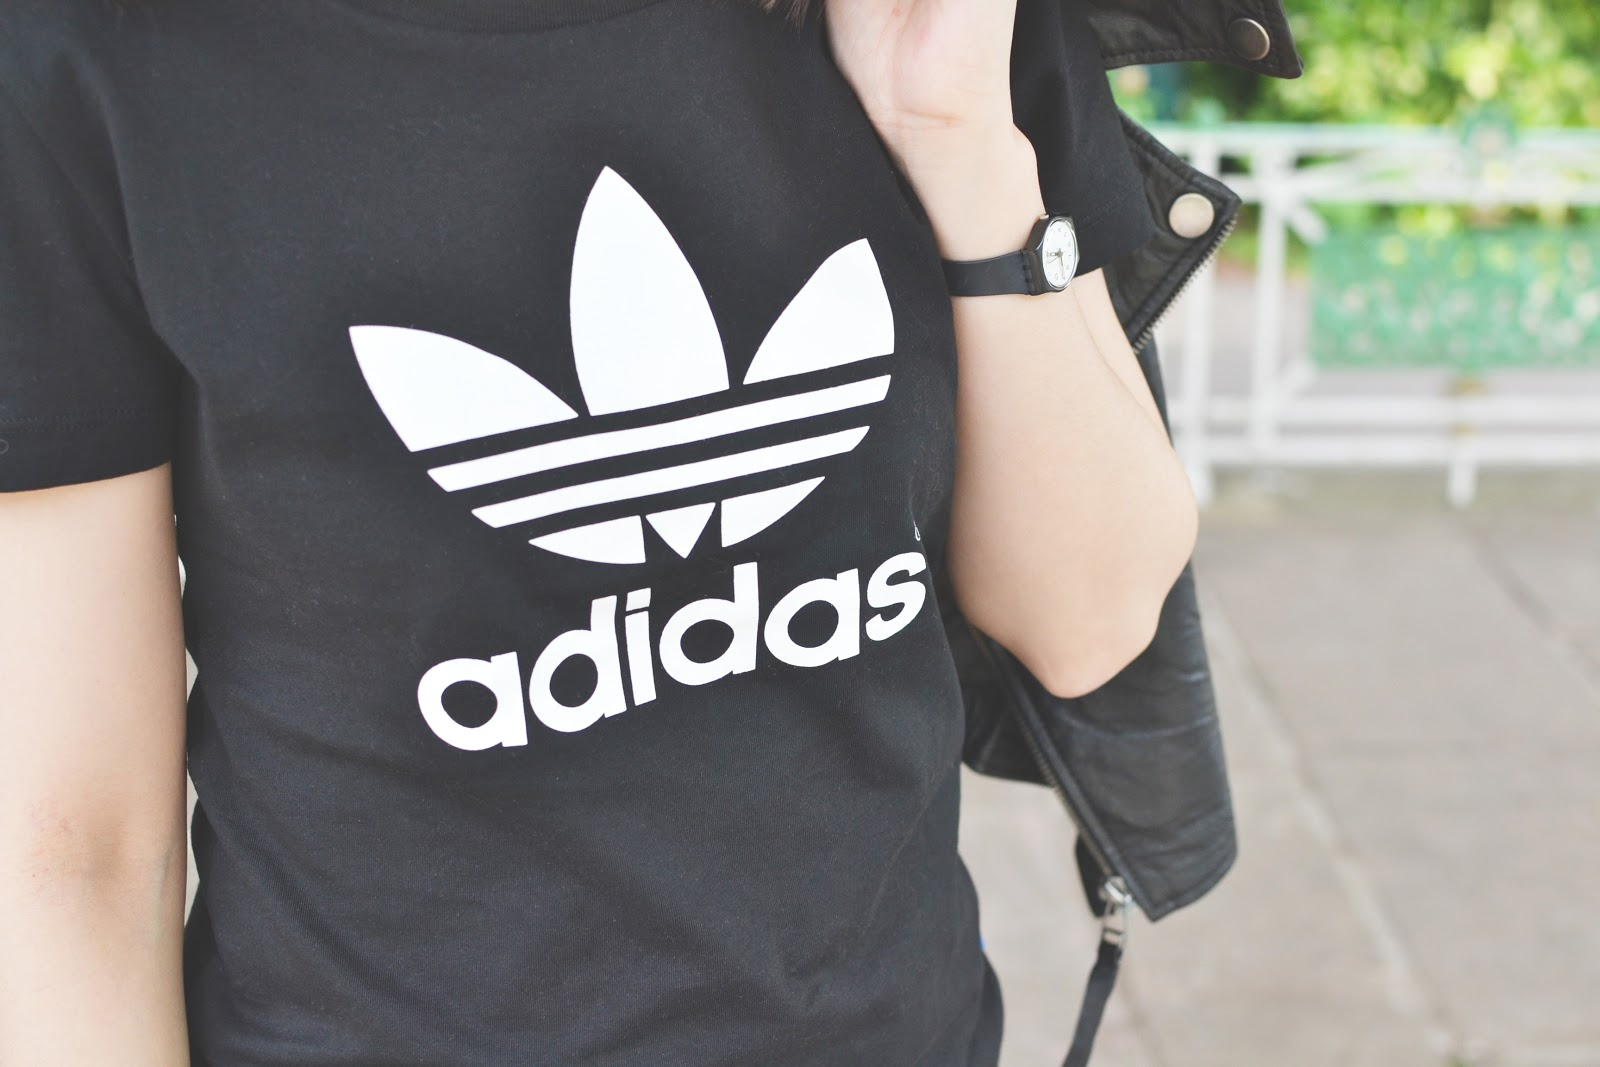 adidas black and white tshirt